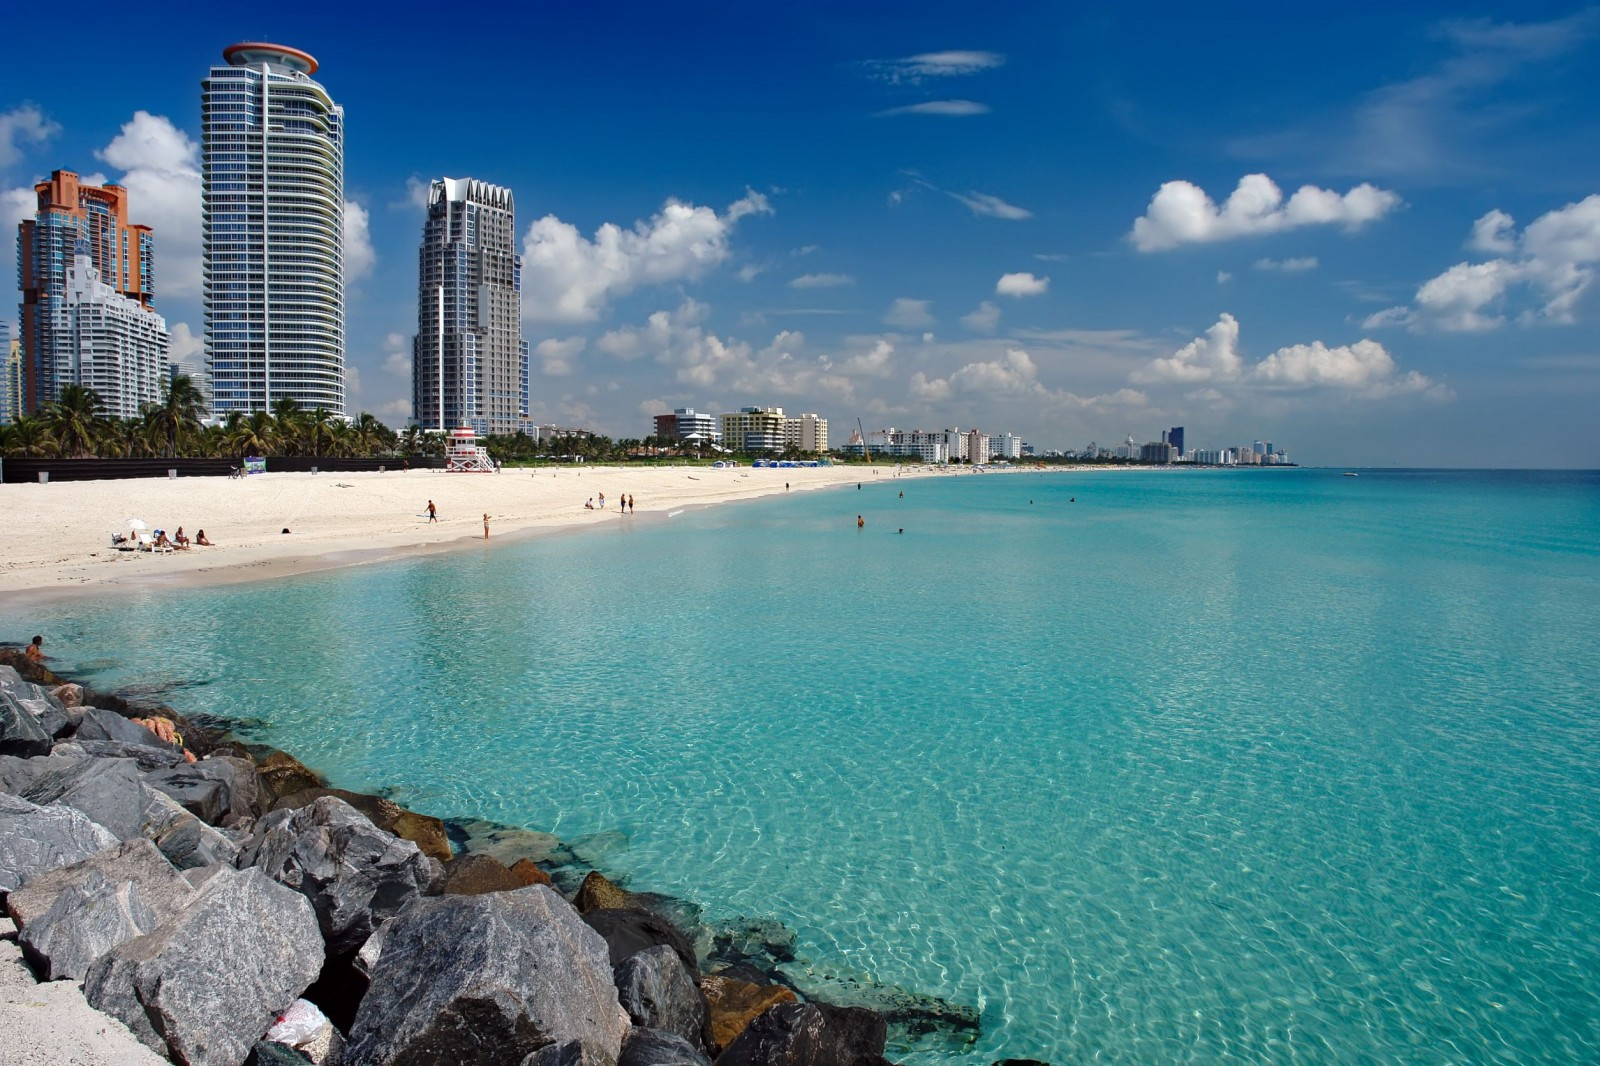 south-beach-miami-florida-United-States-1600x1066